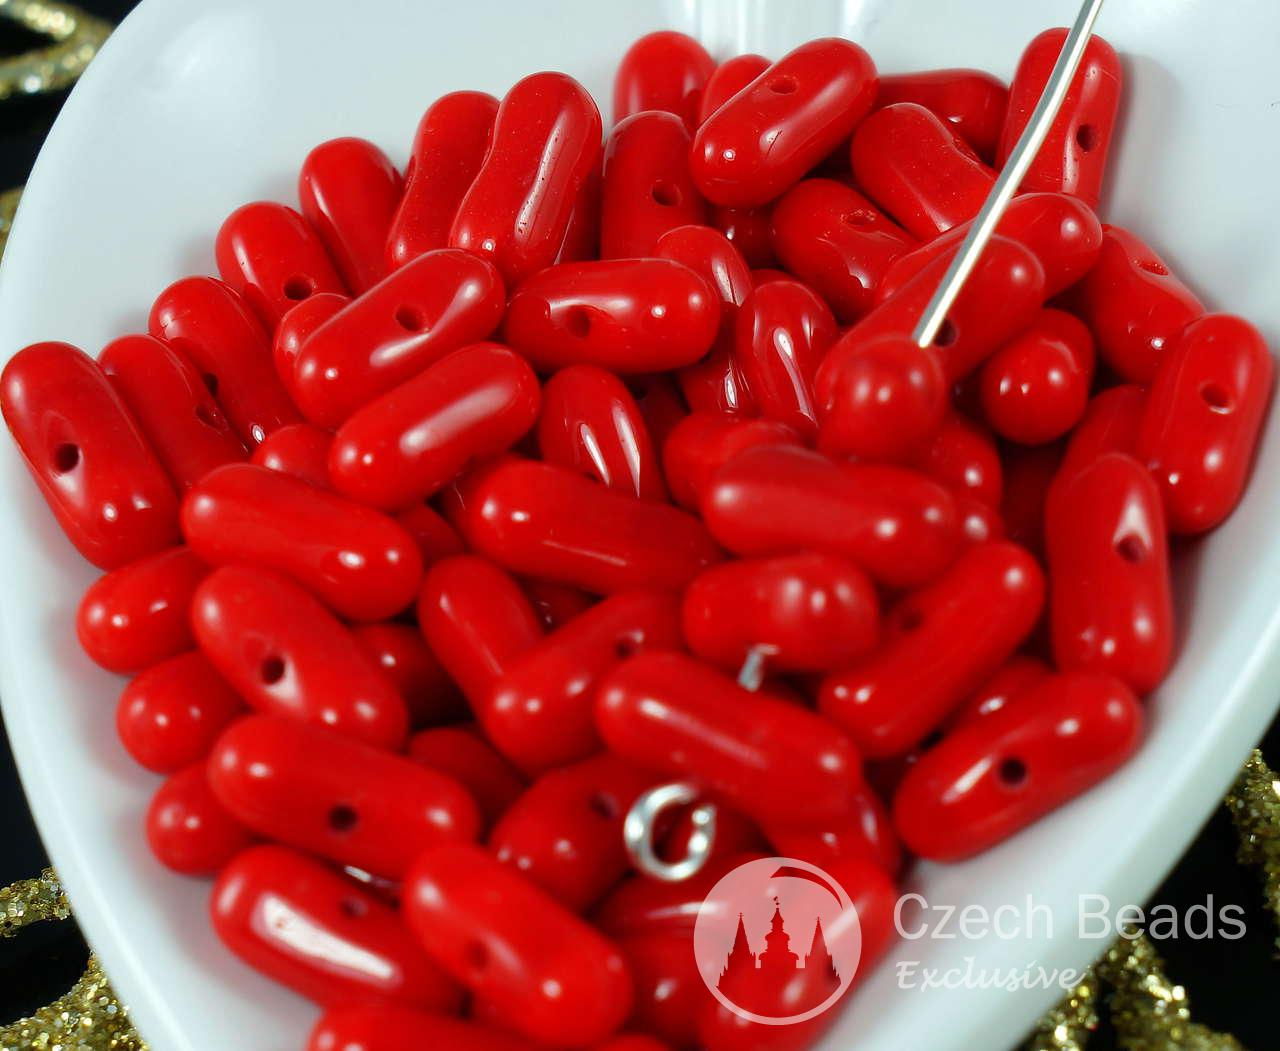 Opaque Red Czech Glass Oblong Oval Spacer Farfalle Peanut Beads 9mm x 4mm 60pcs